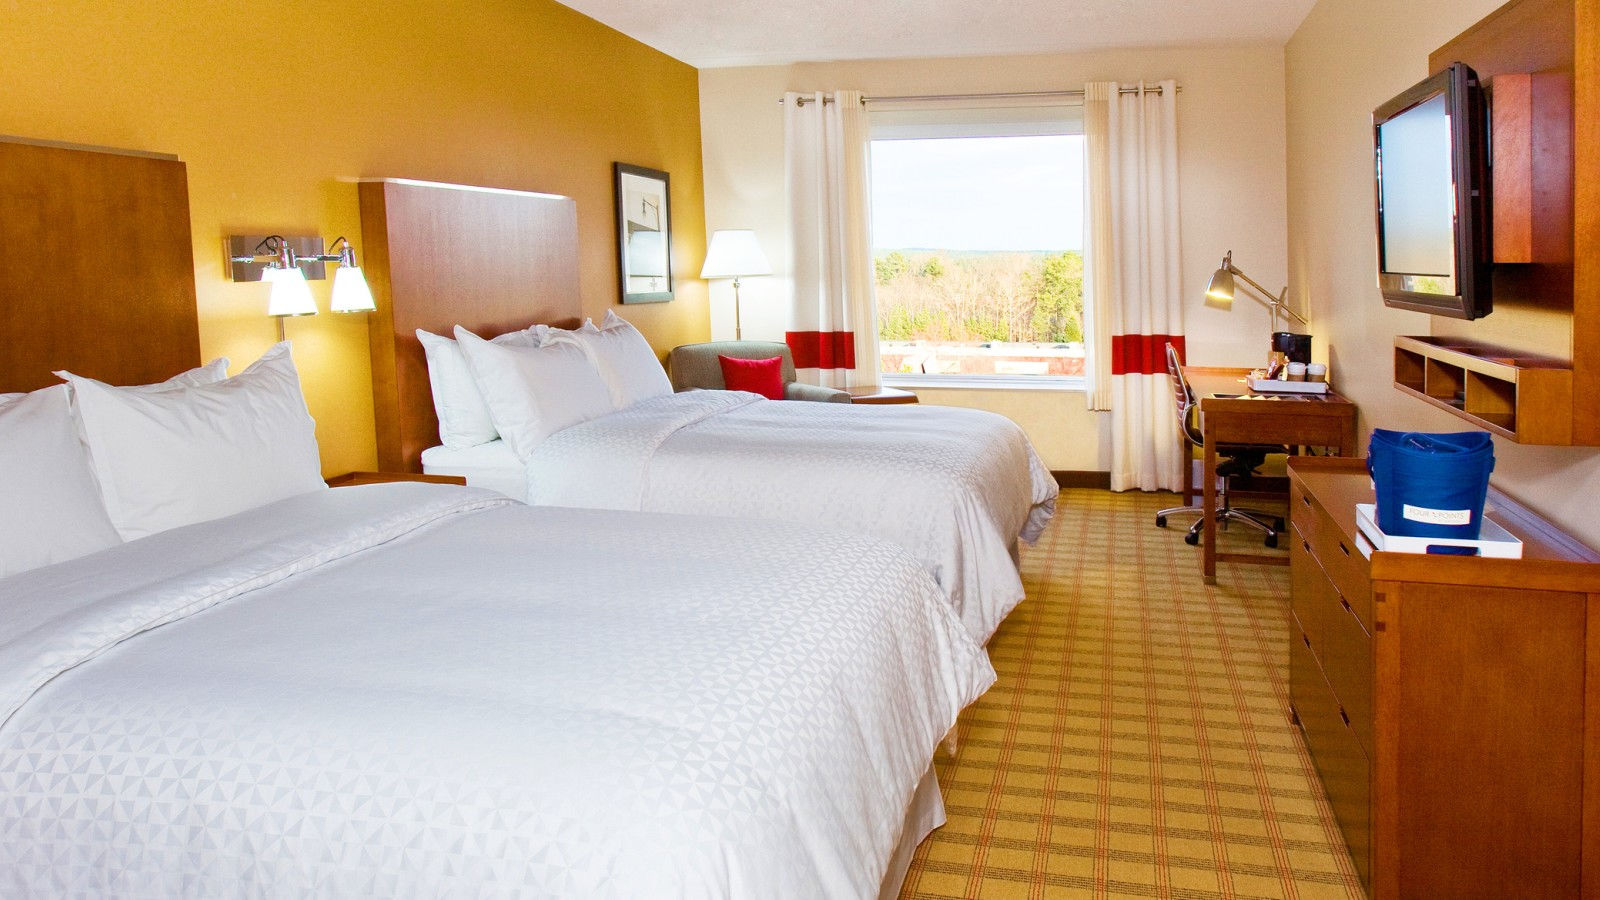 Raleigh Durham Airport Accommodations - Double Queen Guest Room